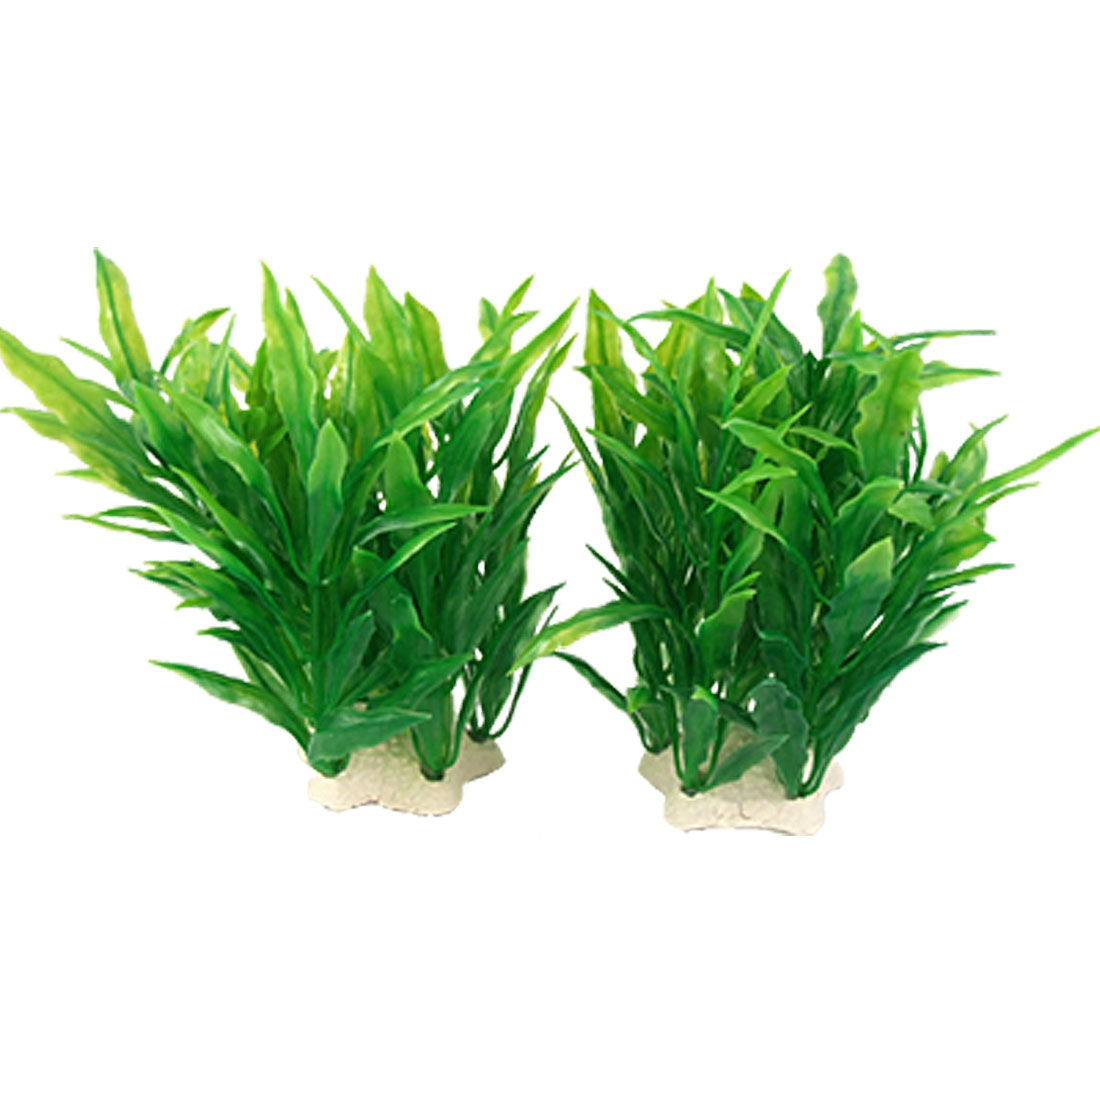 2 Pcs Green Plastic Plant Decor w Ceramic Base for Aquarium